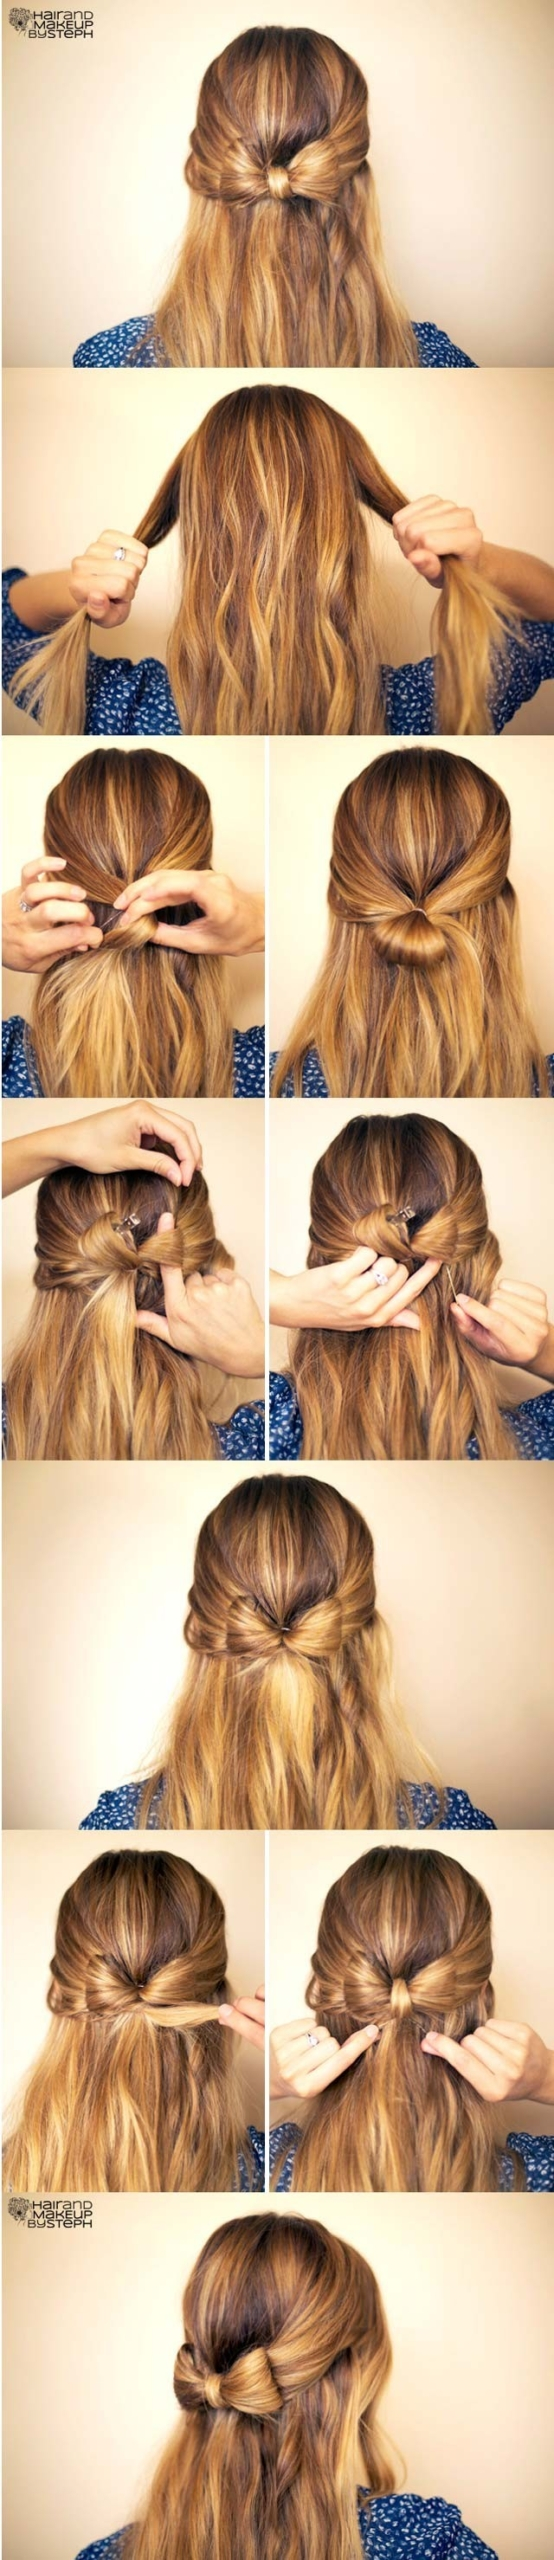 Cute Easy Styles For Girls